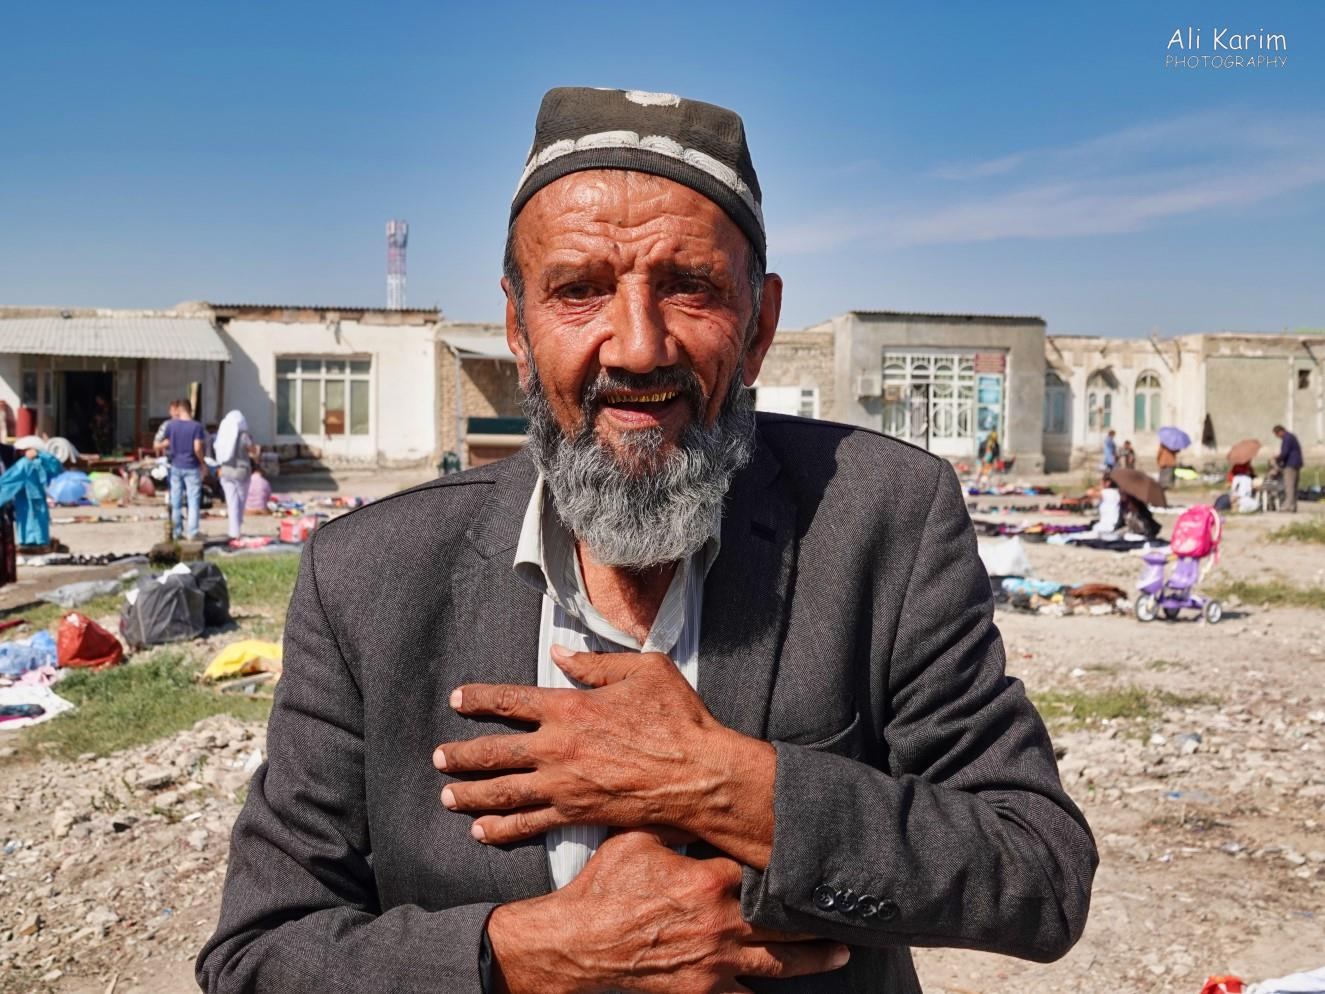 Bukhara, Oct 2019, This local wanted to converse with us, but no English; loved his golden teeth